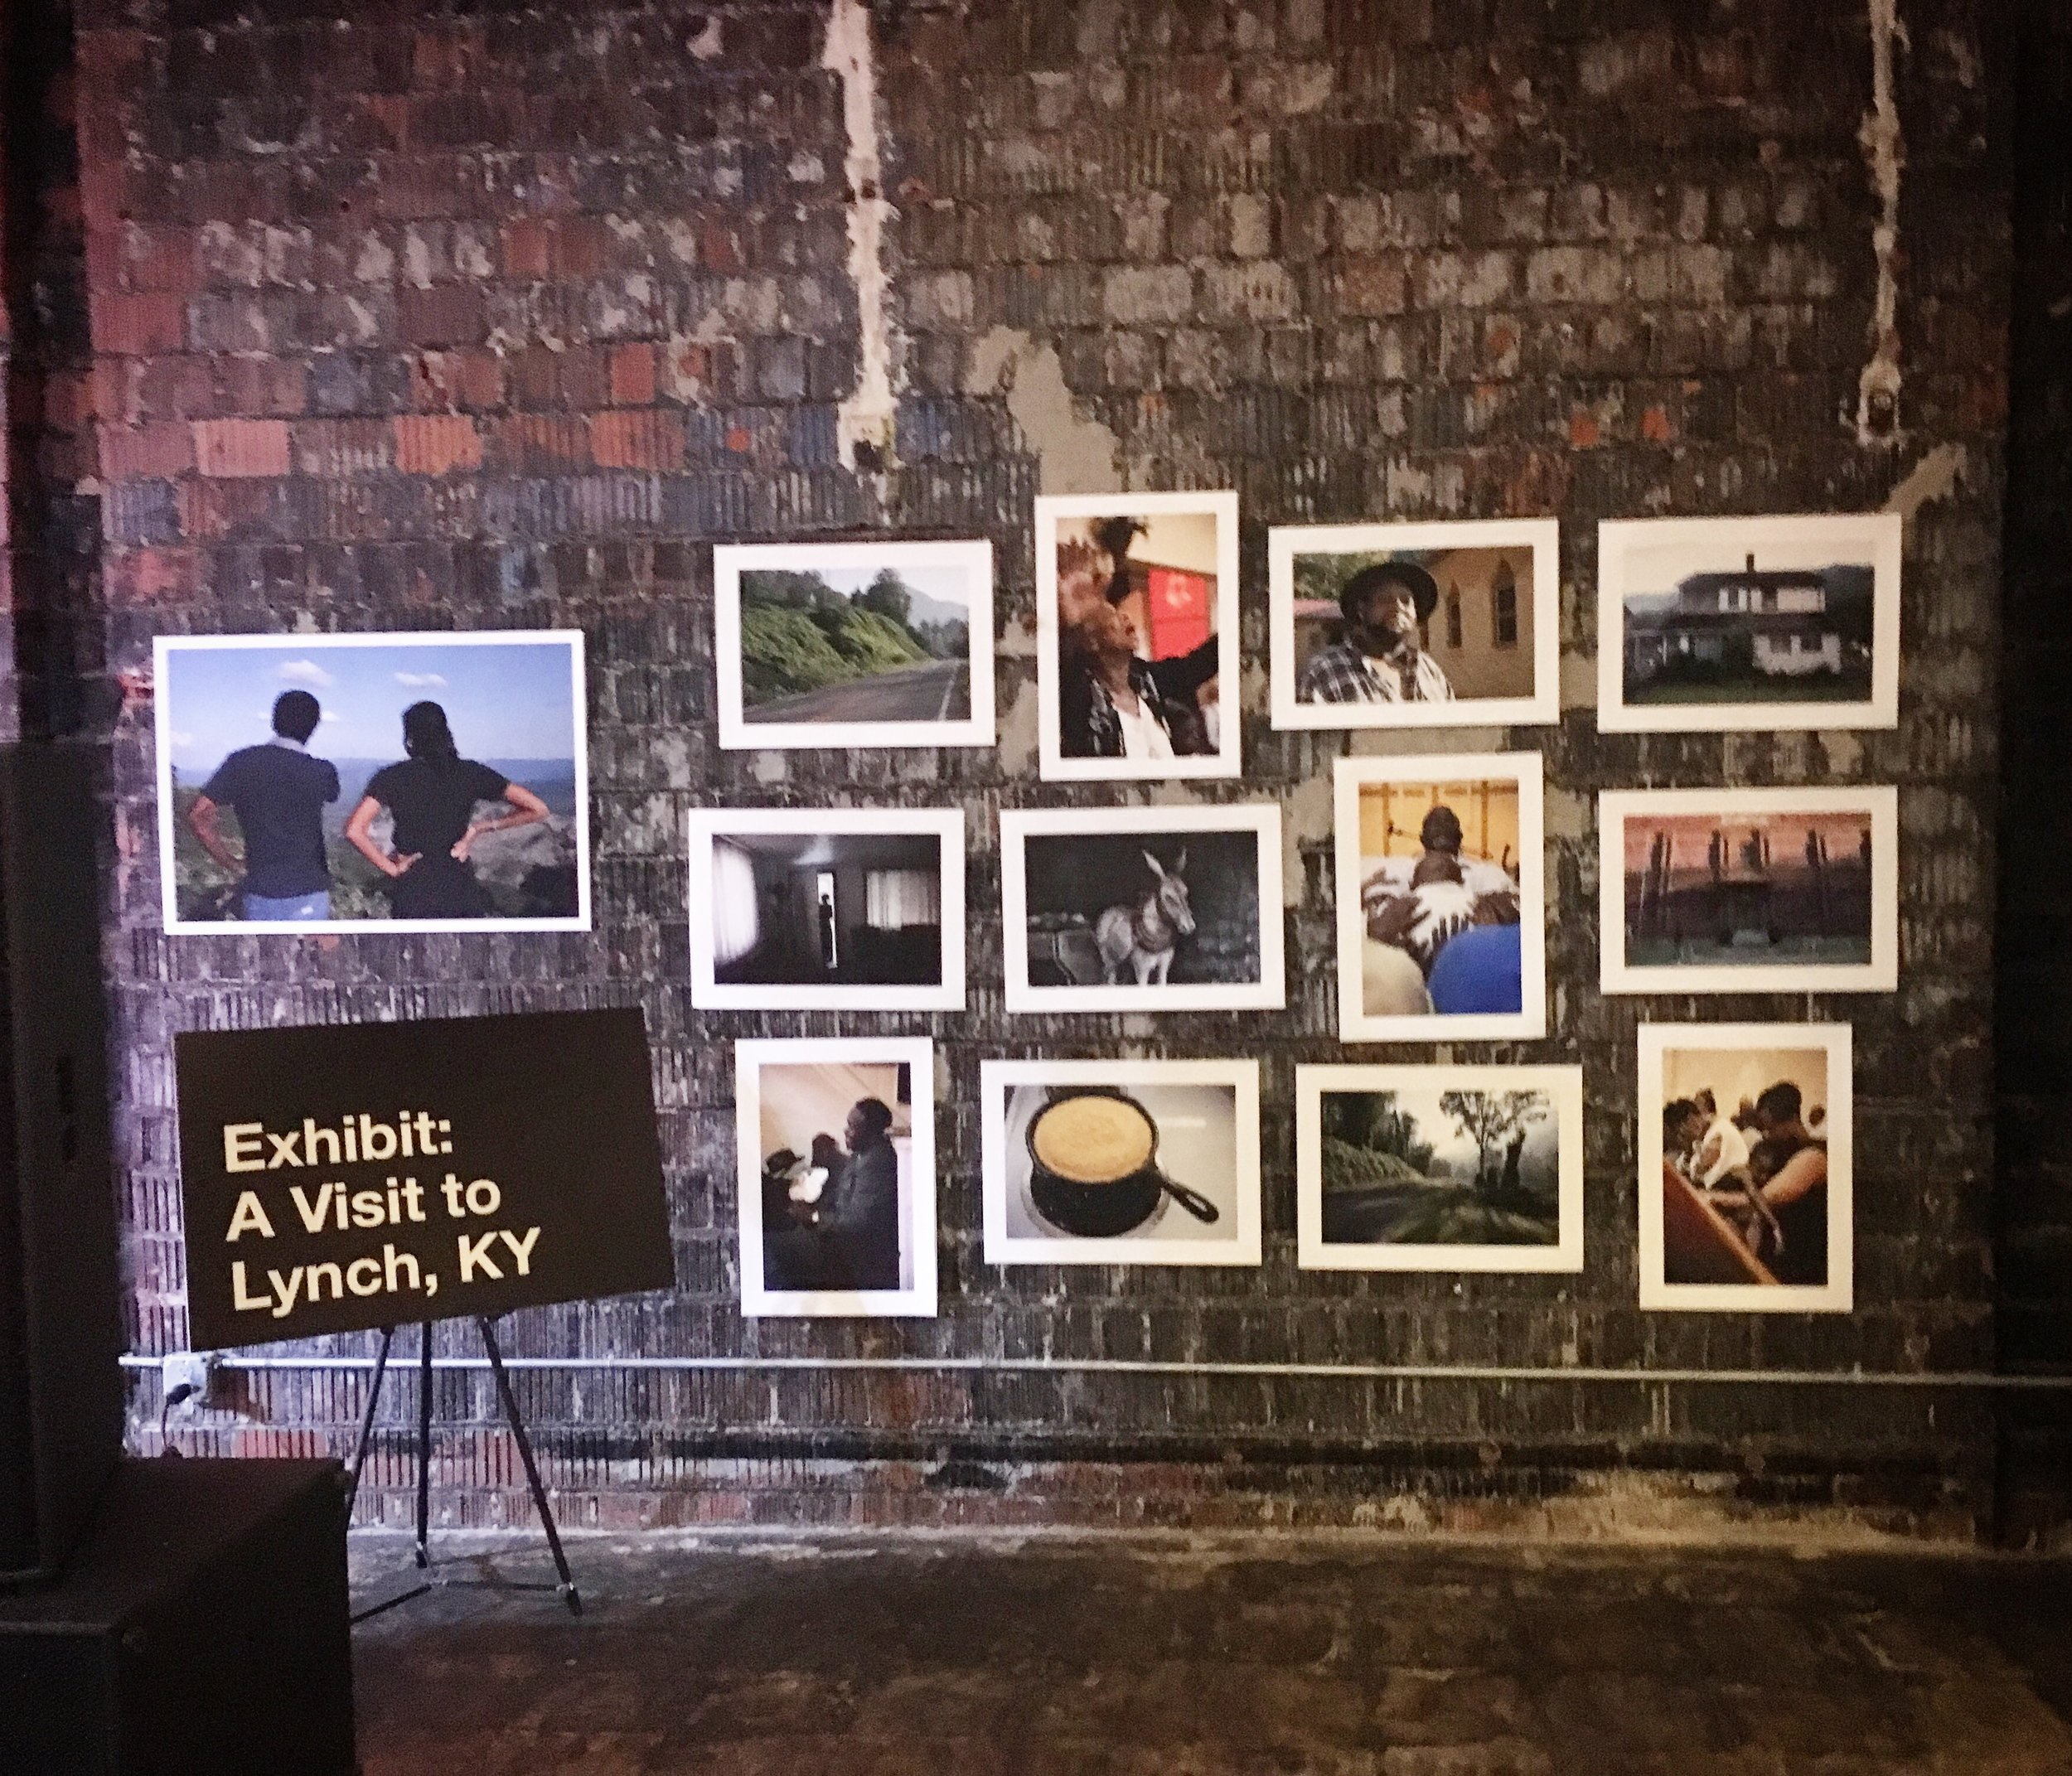 Exhibit: A Visit to Lynch, KY by  Sarah Hoskins , displayed at TEDxCorbin